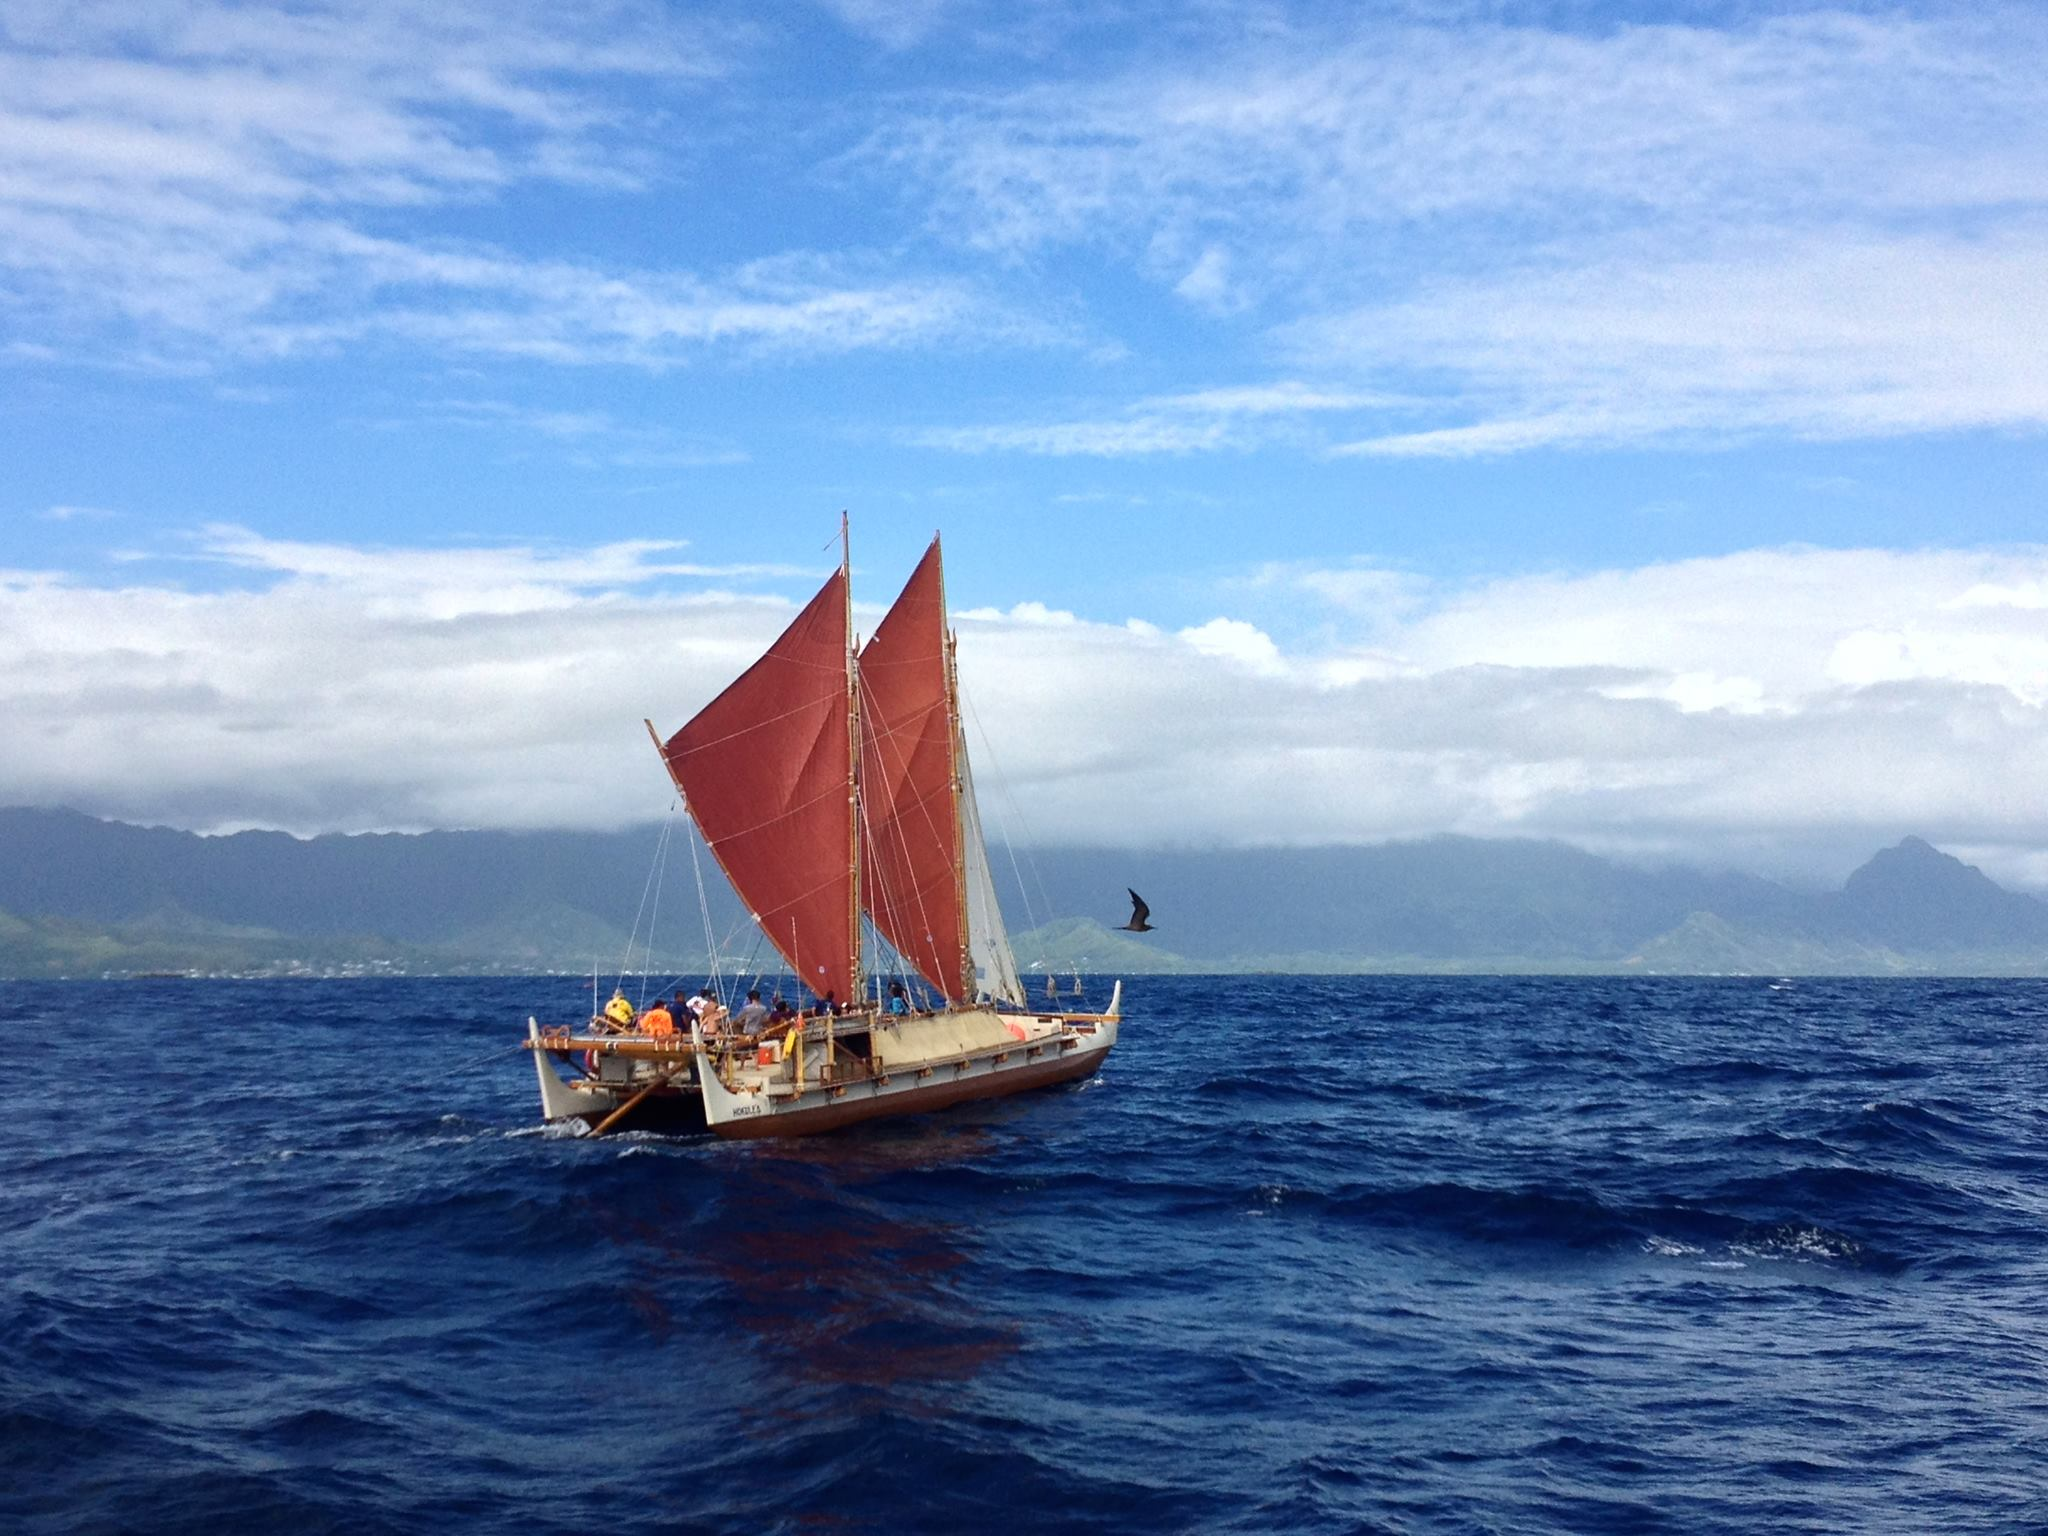 Native Hawaiian canoe circles globe in climate change mission